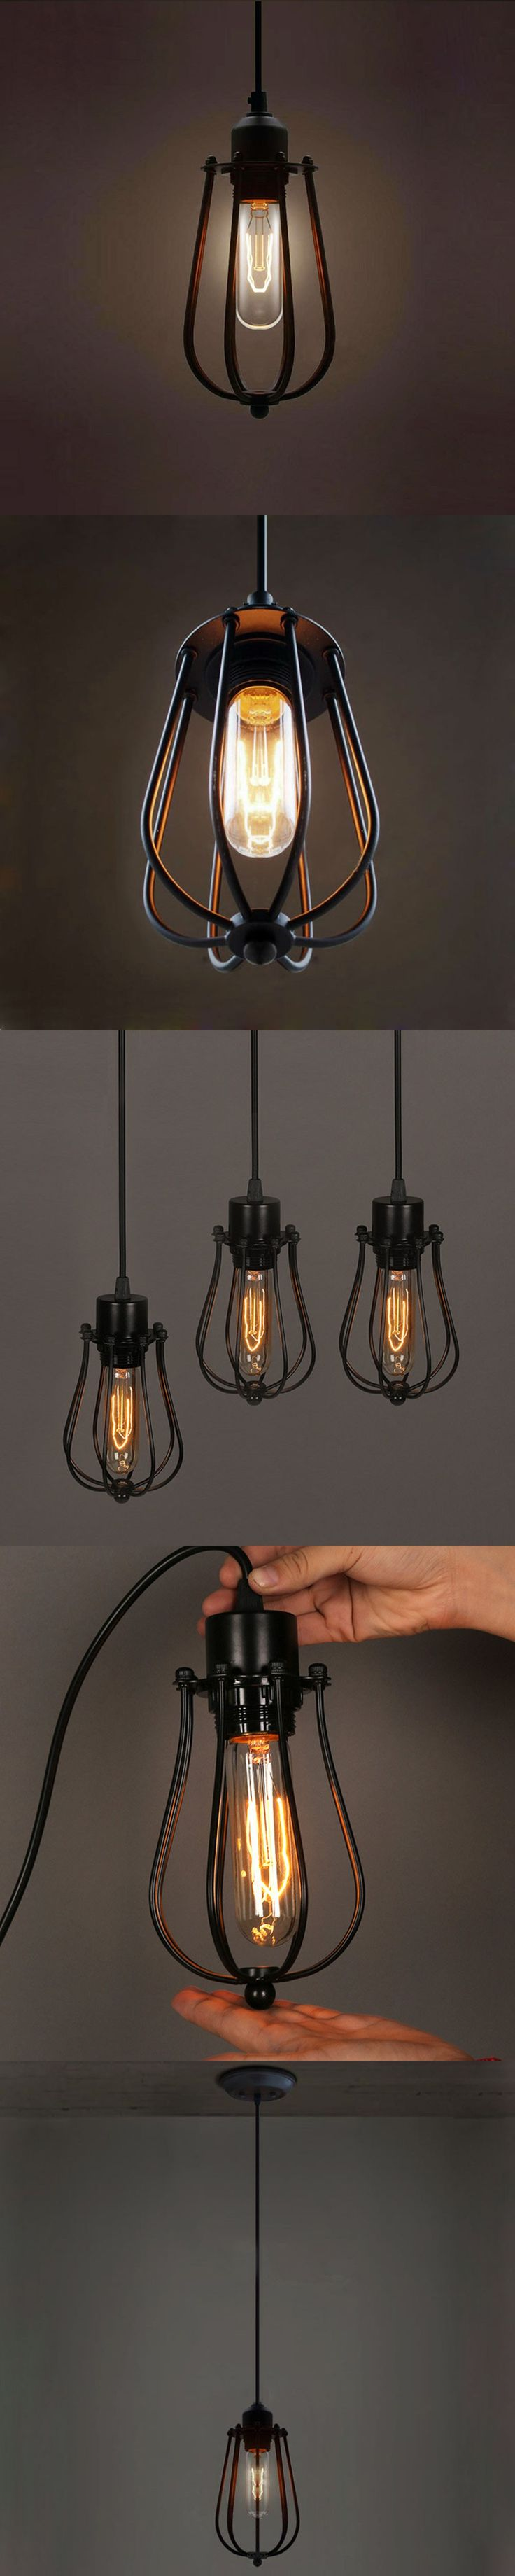 Warehouse Pendant Lights American Country Lamps Vintage Lighting For Restaurant Bedroom Home Decoration Black Bar